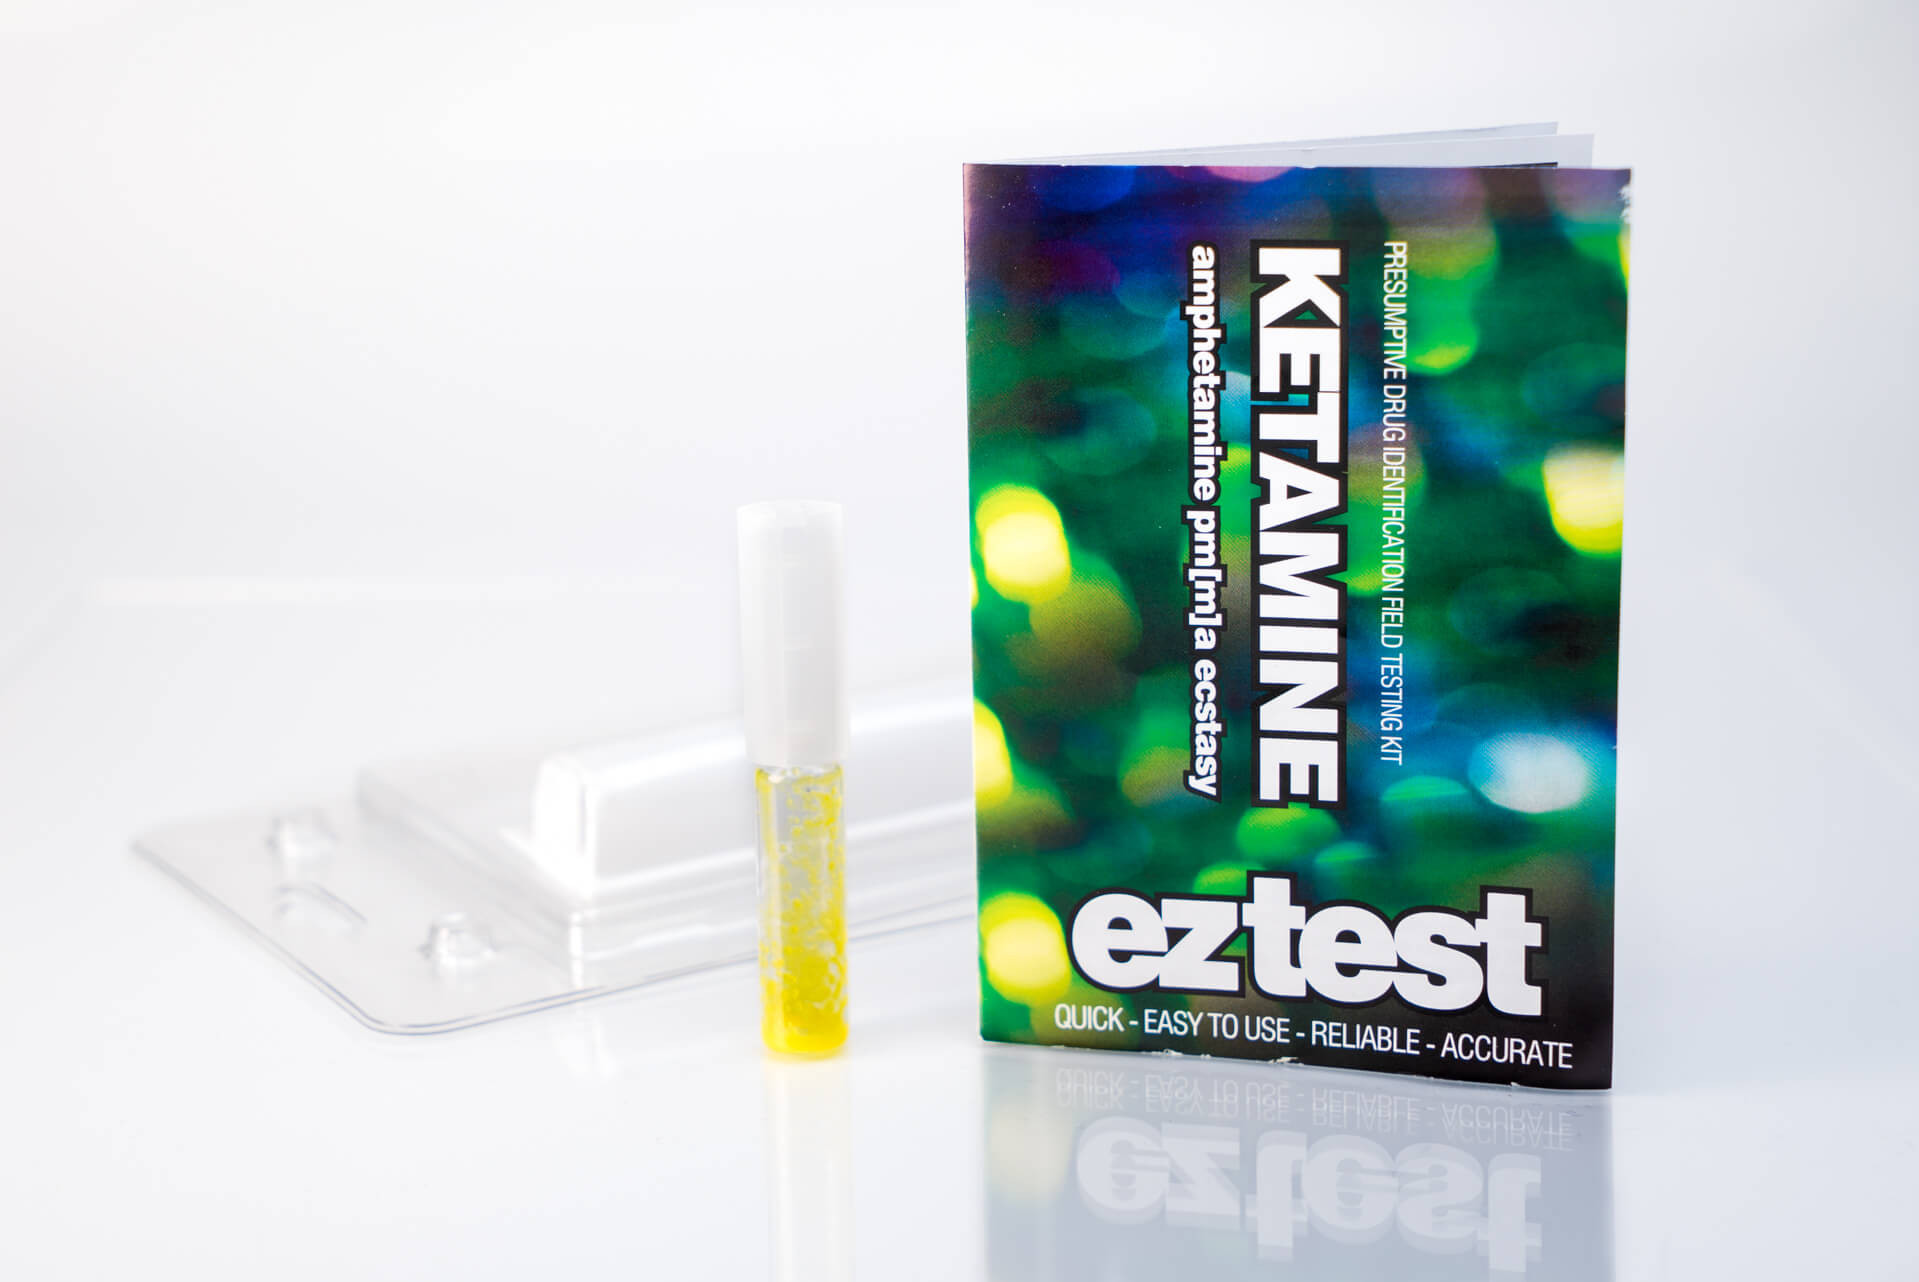 Einweg Ketamin Drogen Test-Kit